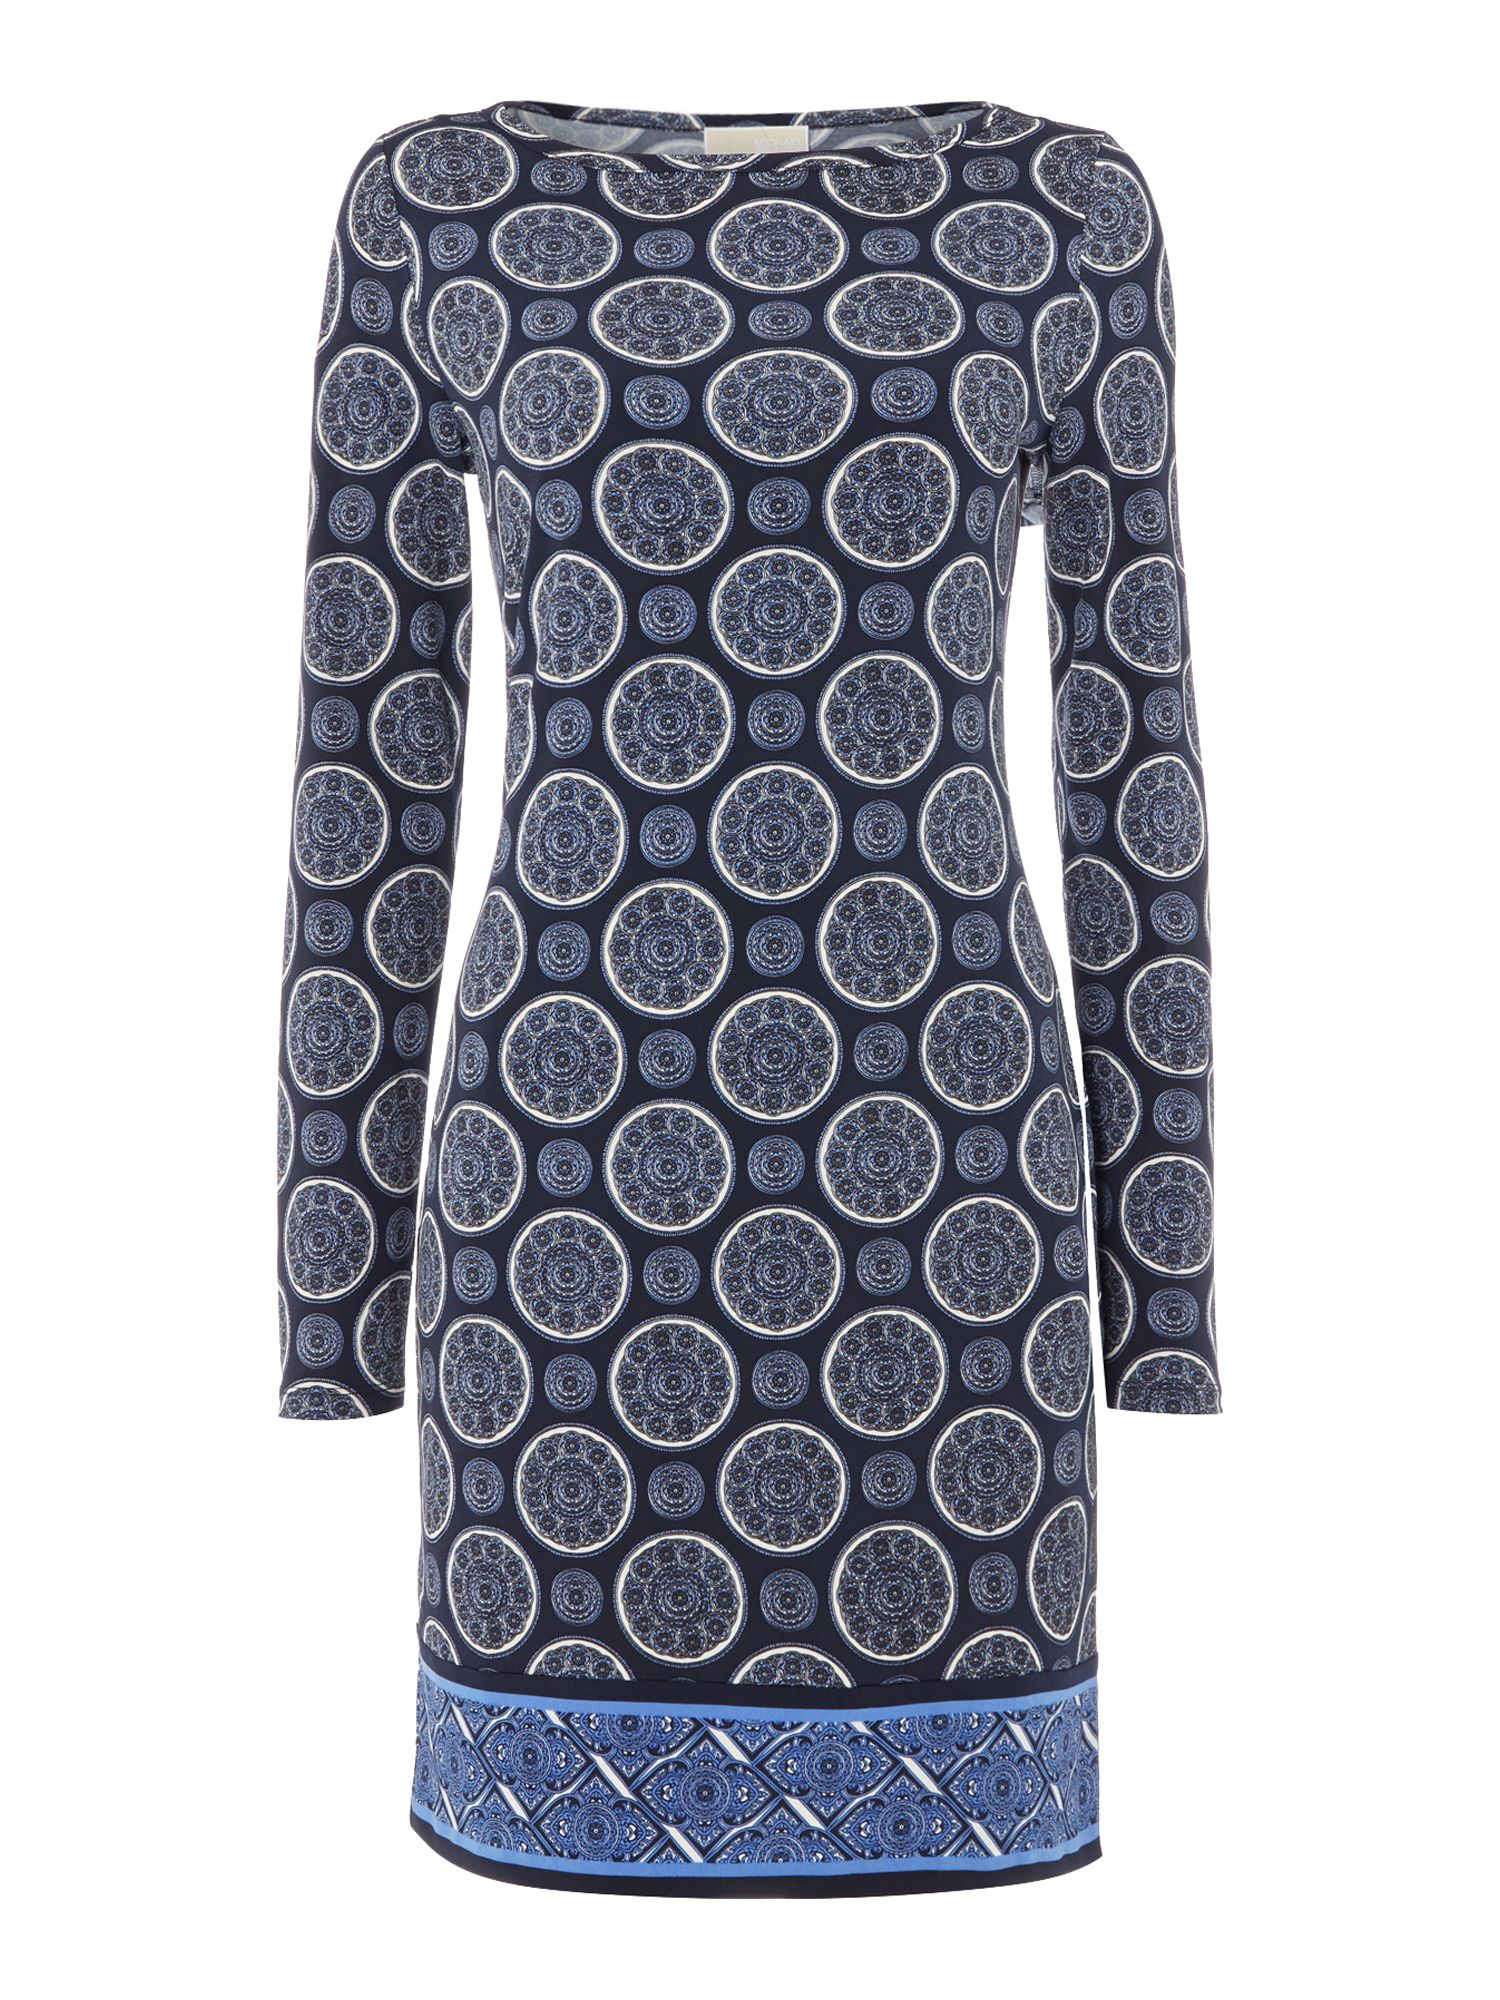 Michael Kors Border Dress, Iris